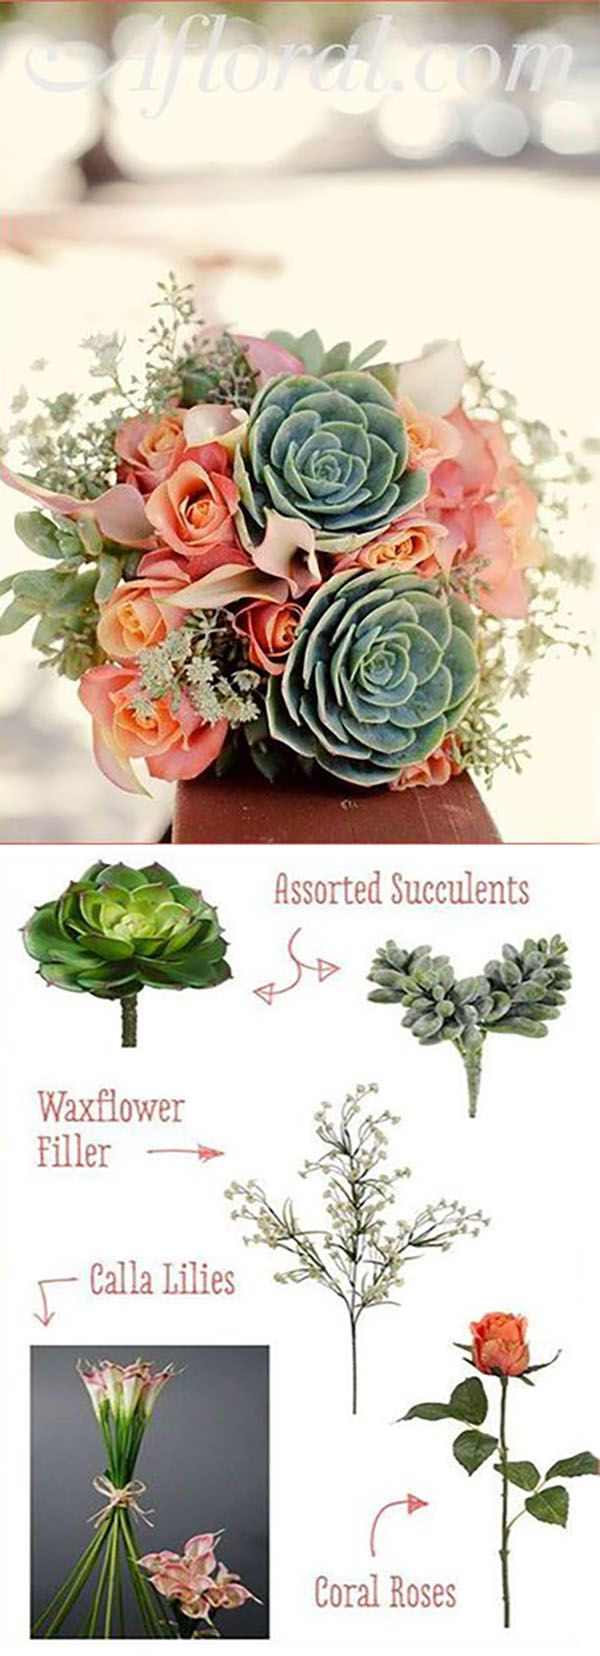 Mejores 35 imgenes de wildflower en pinterest arreglos florales fill you bohemian wedding with faux succulents and cheap wedding flowers from afloral solutioingenieria